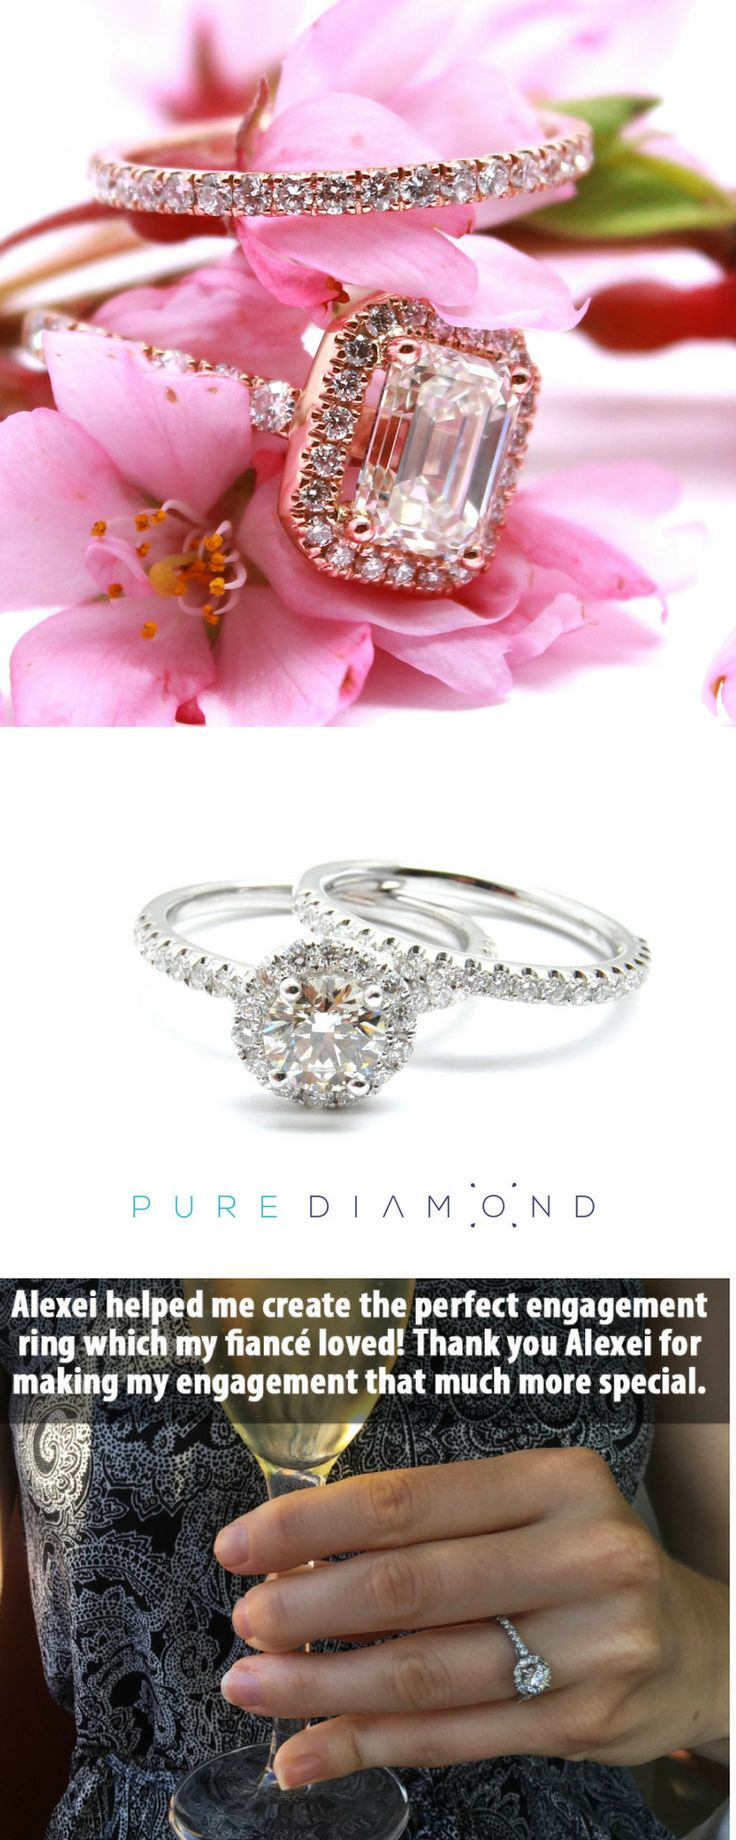 112 best Engagement Rings images on Pinterest | Diamond engagement ...